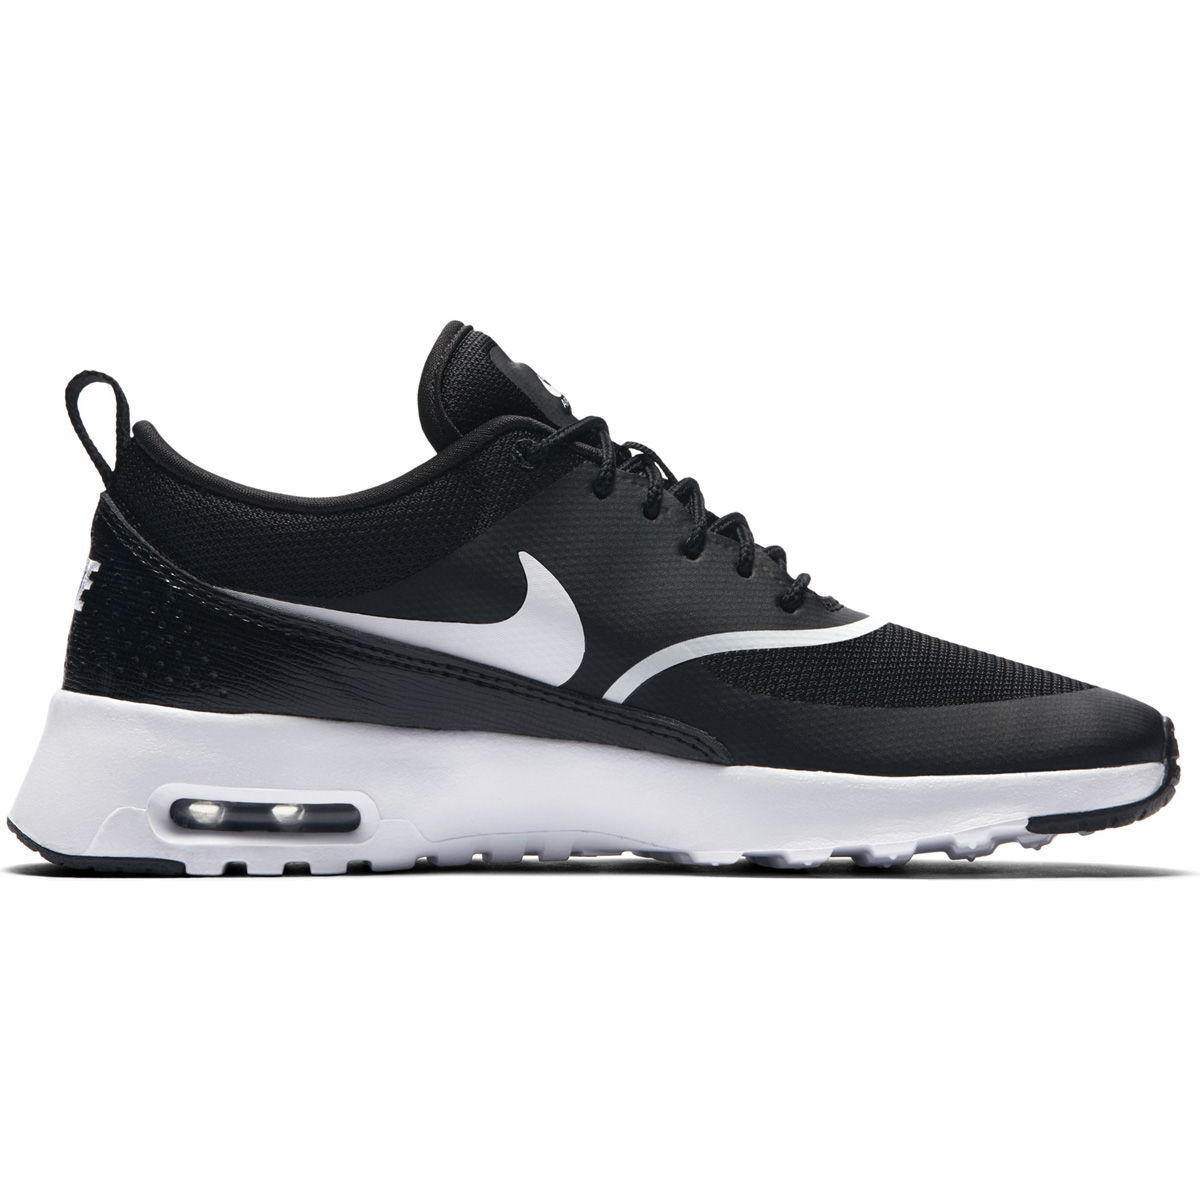 the latest 790af dac56 Nike Damen Sneaker Air Max Thea